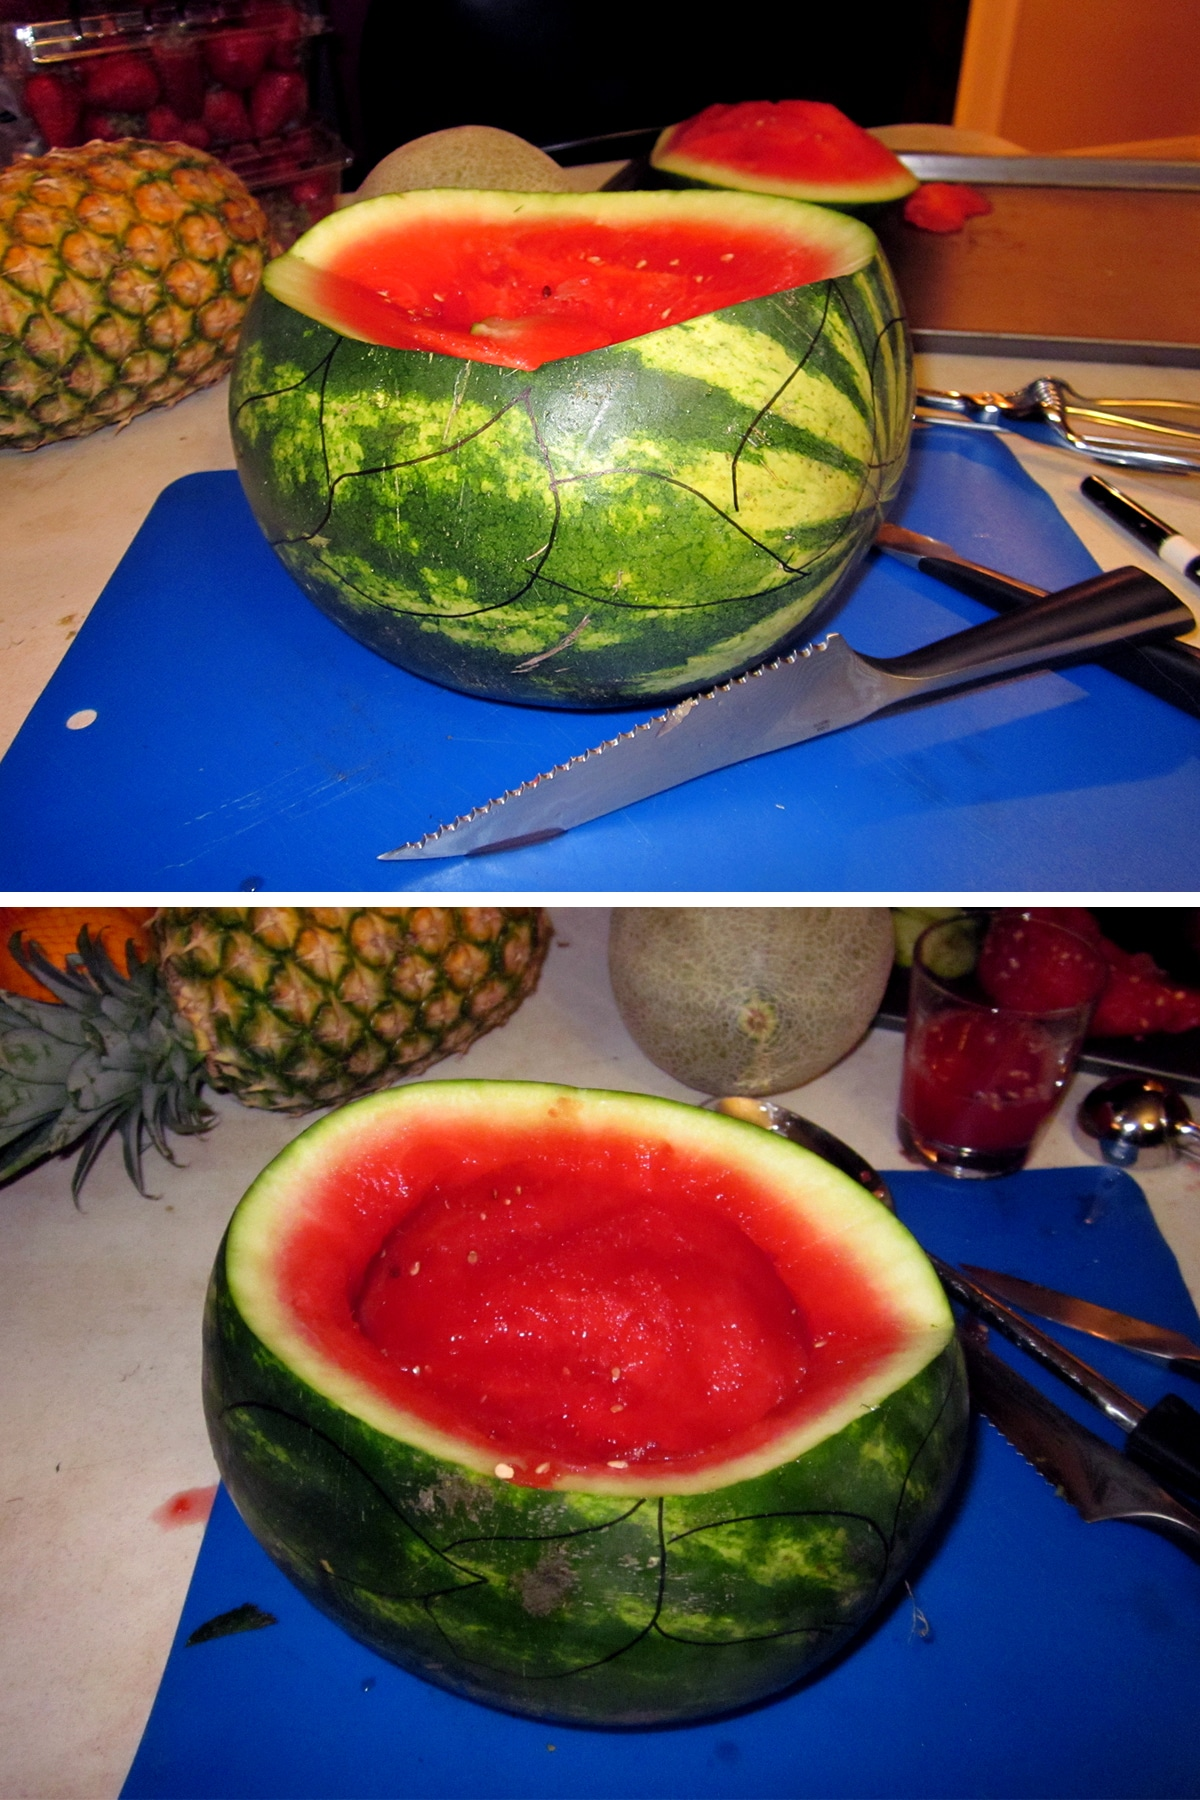 The top part of the watermelon has been cut off, and the inside scooped out.